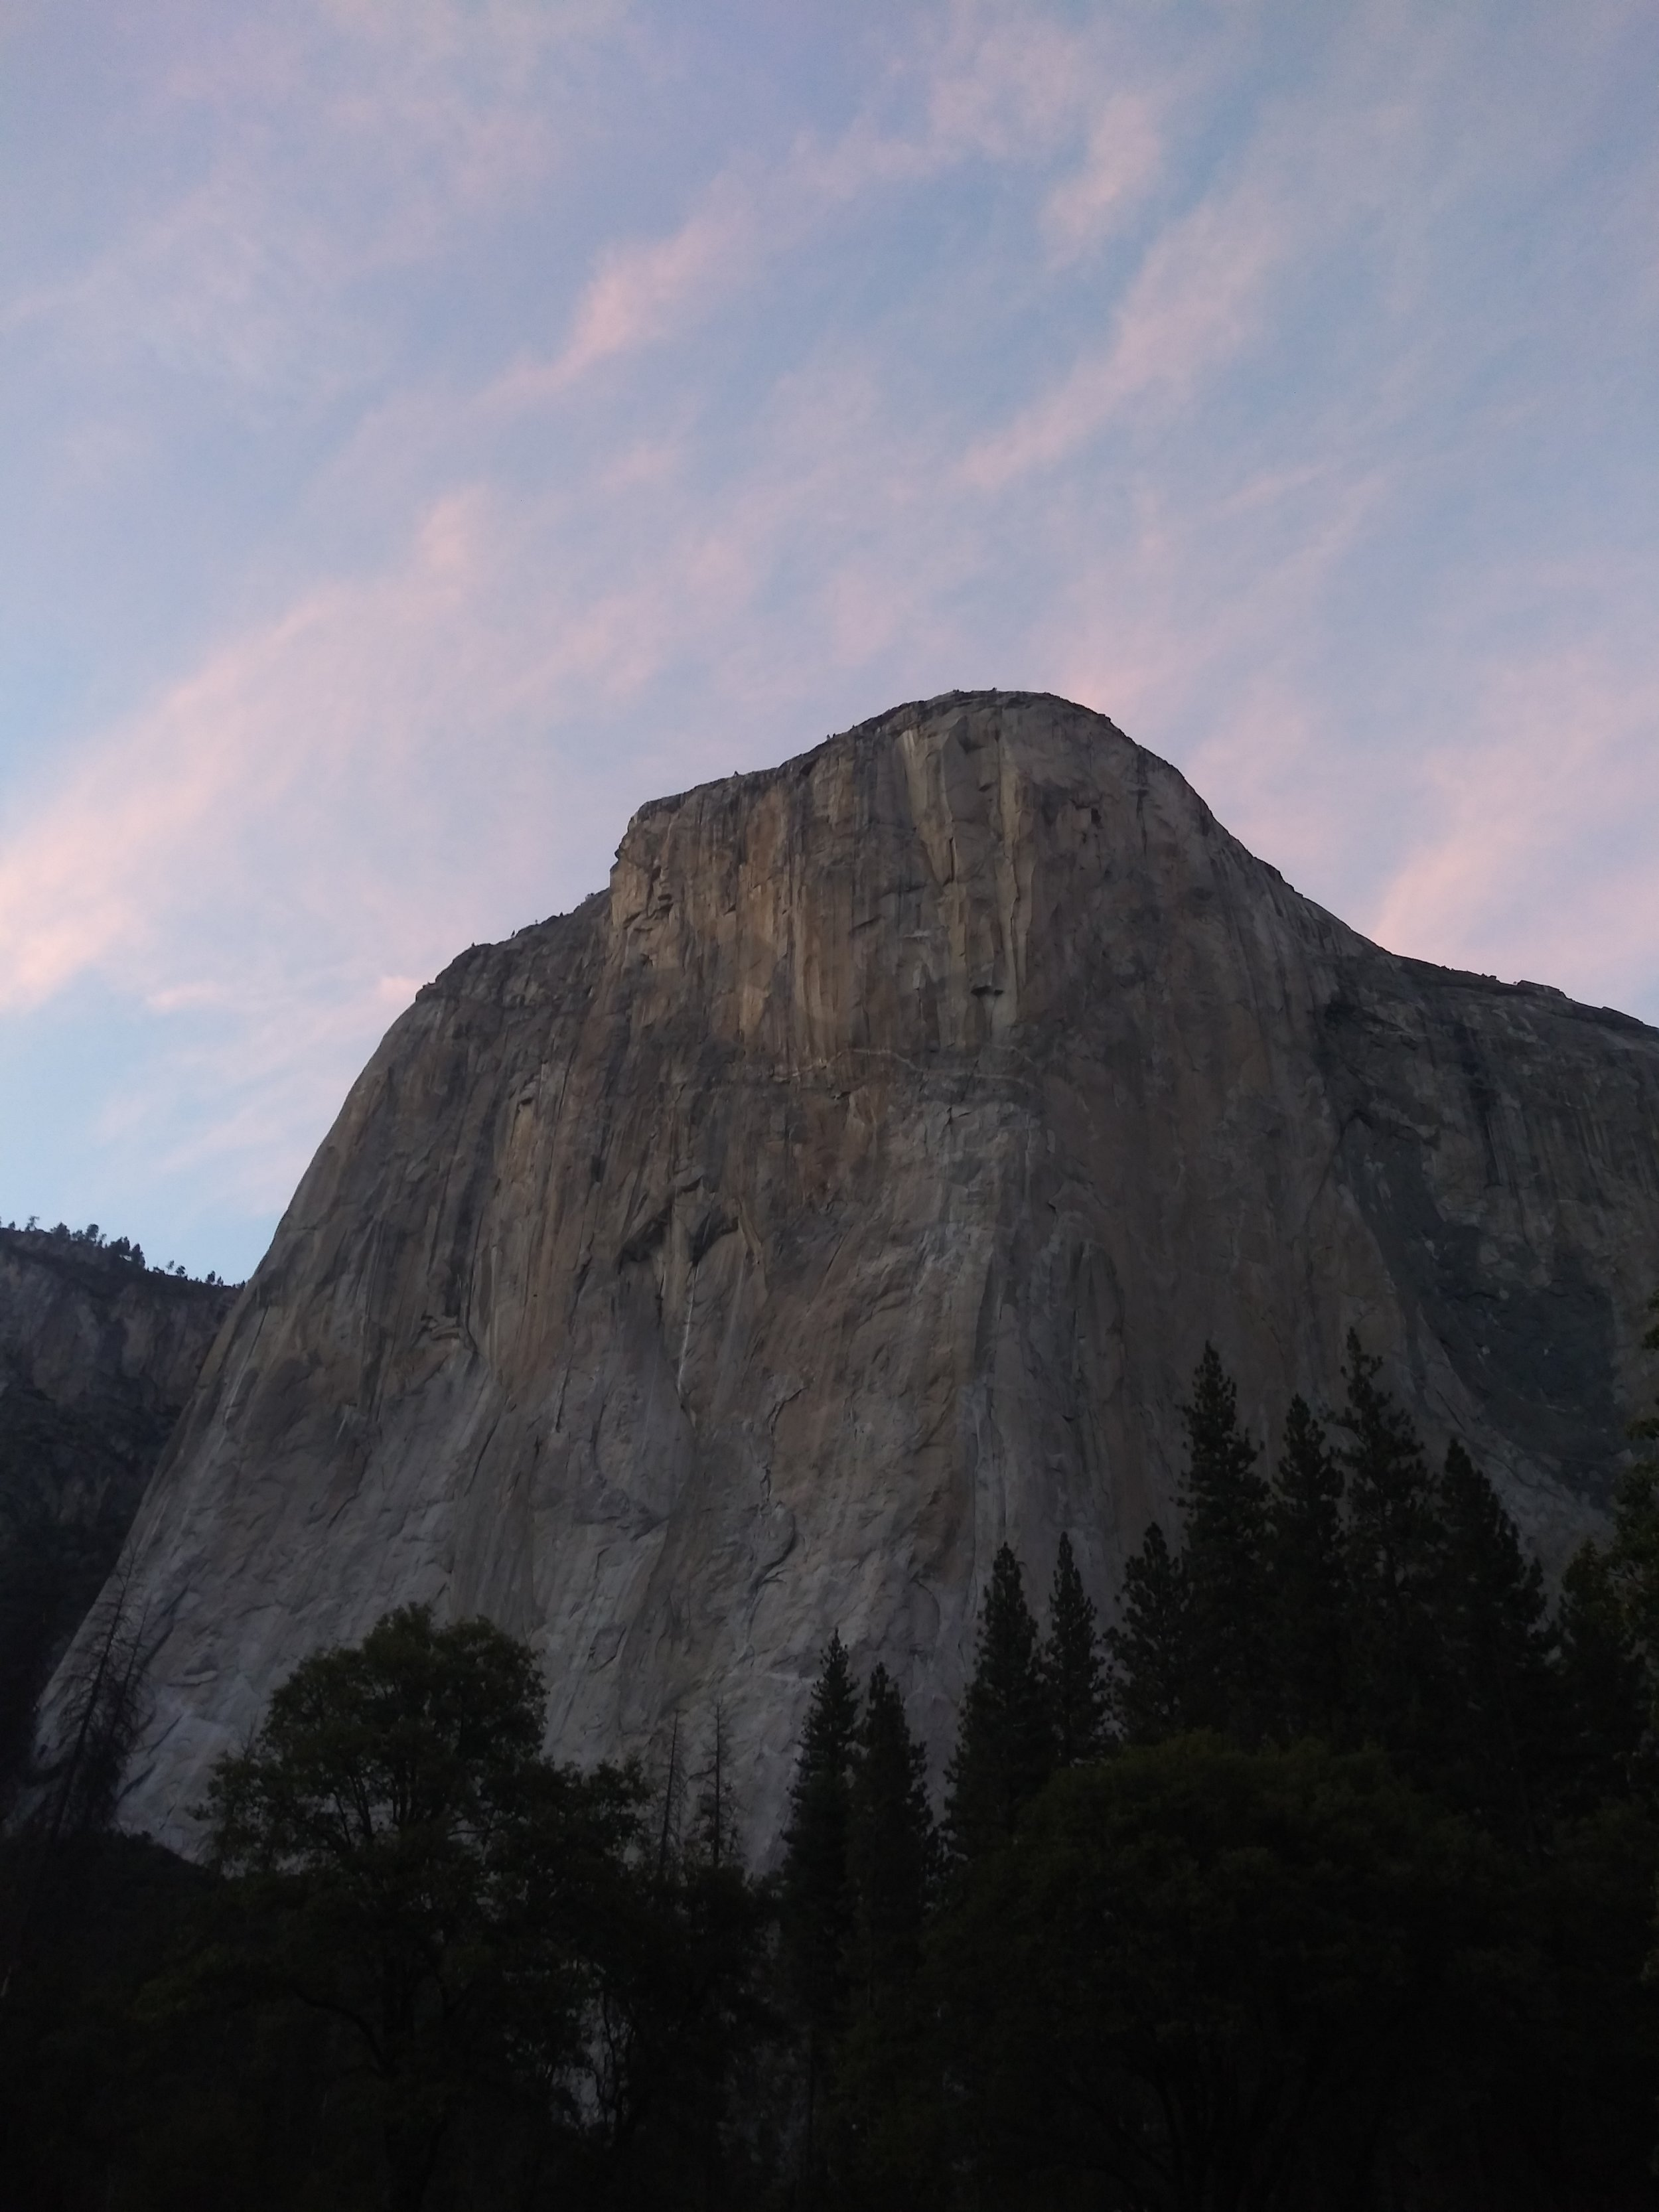 El Capitan, a Mecca for climbers around the world. Simply stunning.